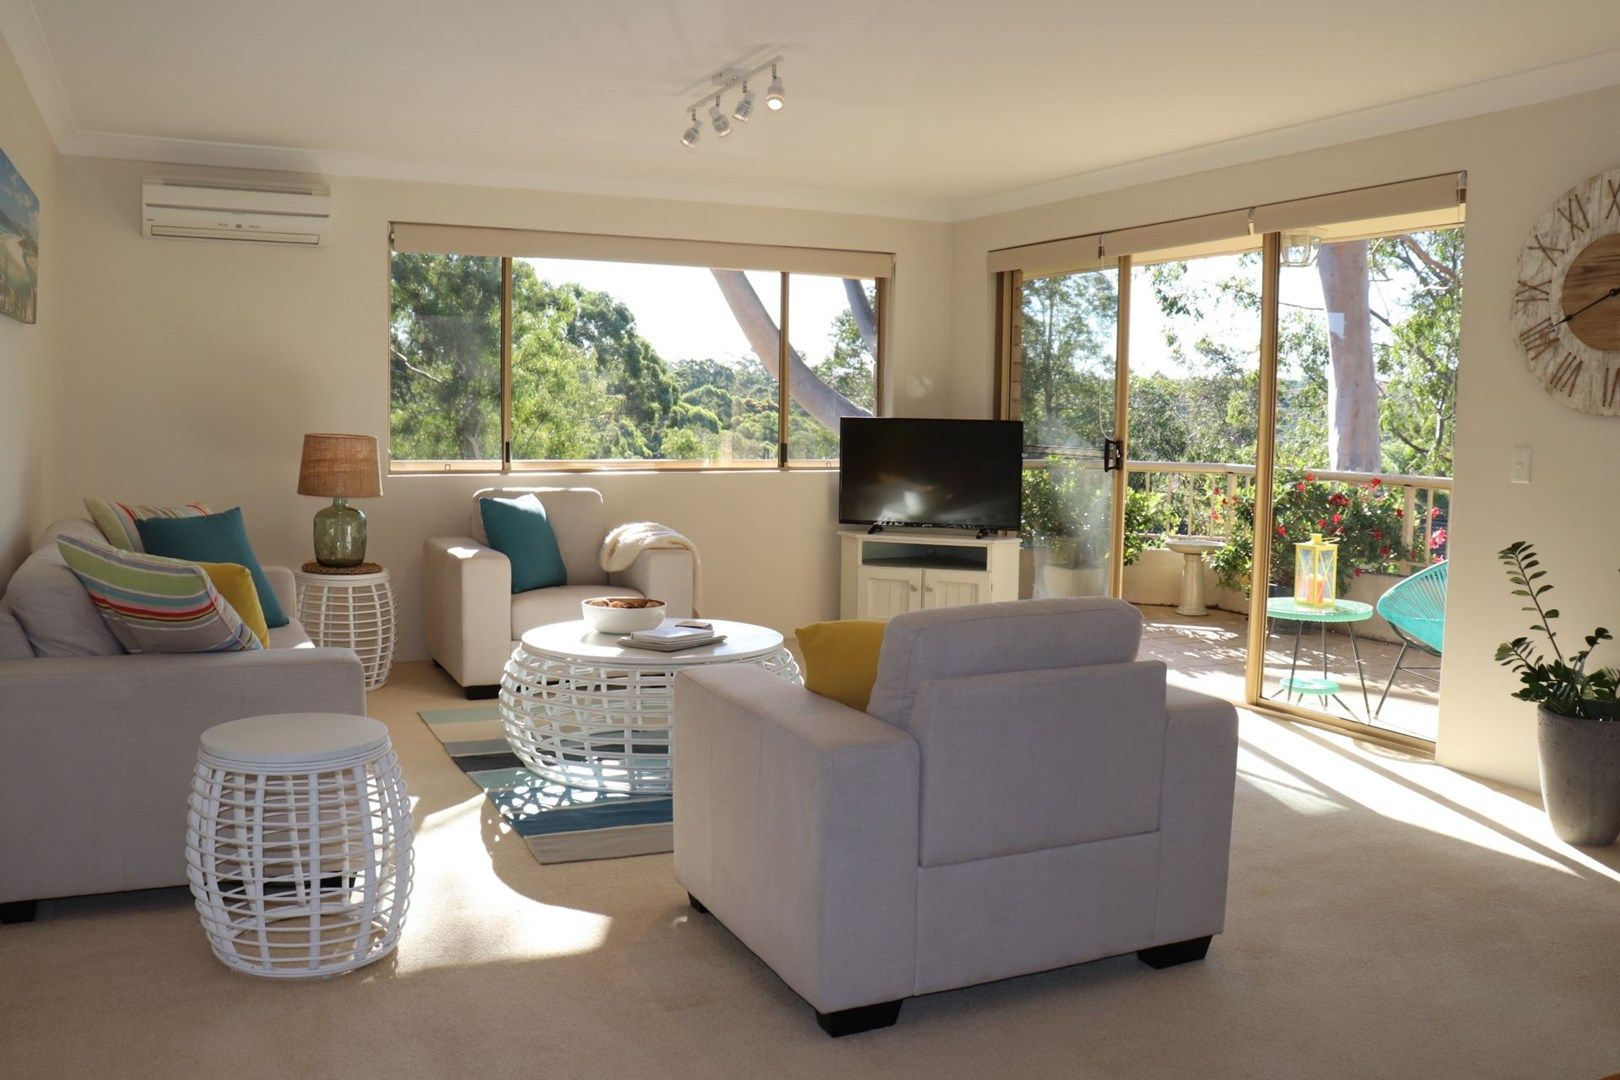 37/1 Tuckwell Place, Macquarie Park NSW 2113, Image 0